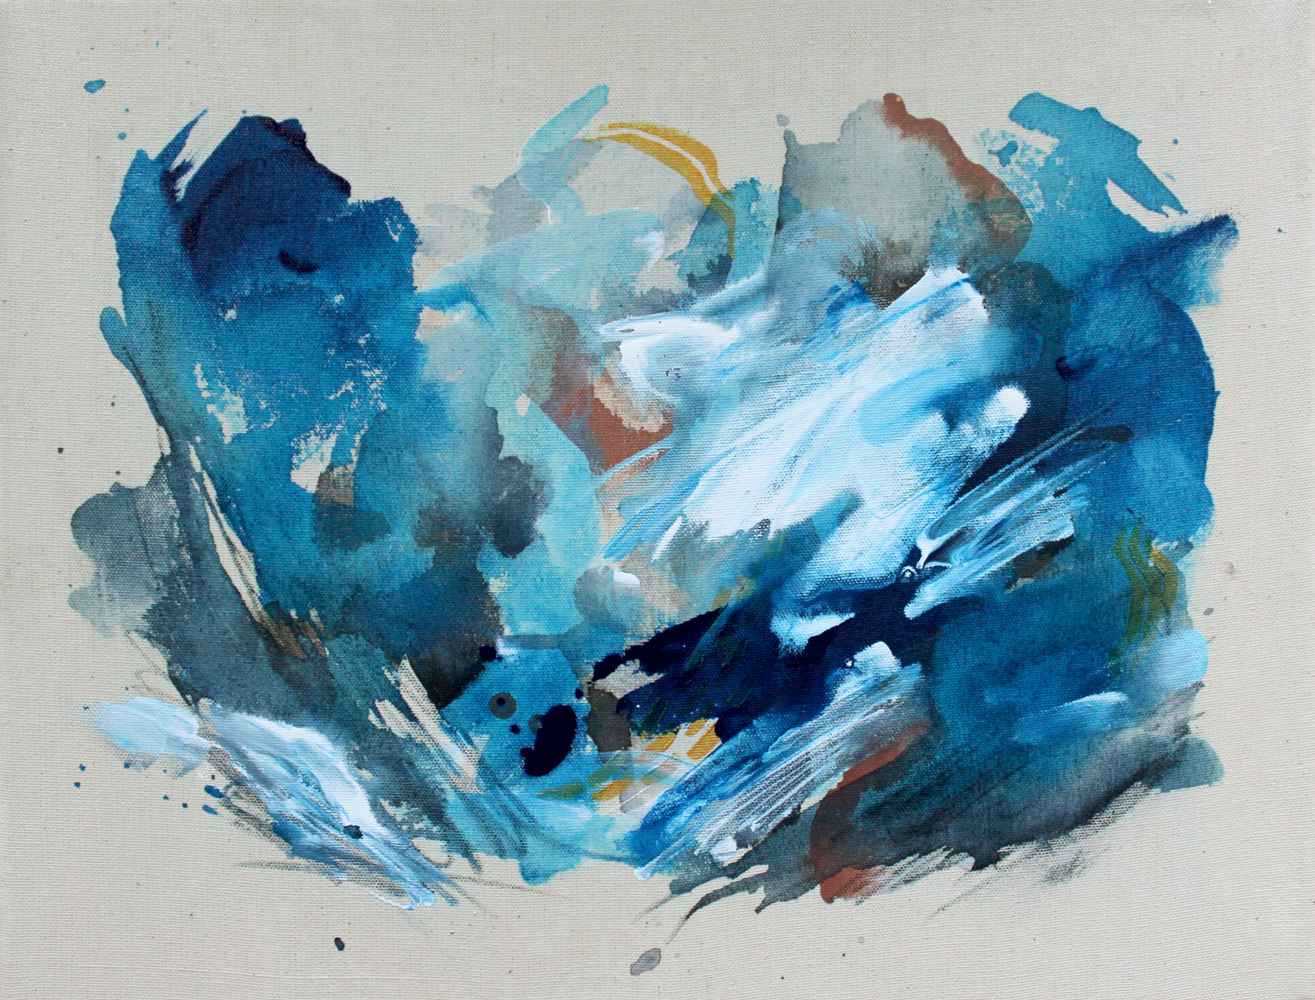 Winds of Change - 18 x 14 Watercolor and acrylic on linen